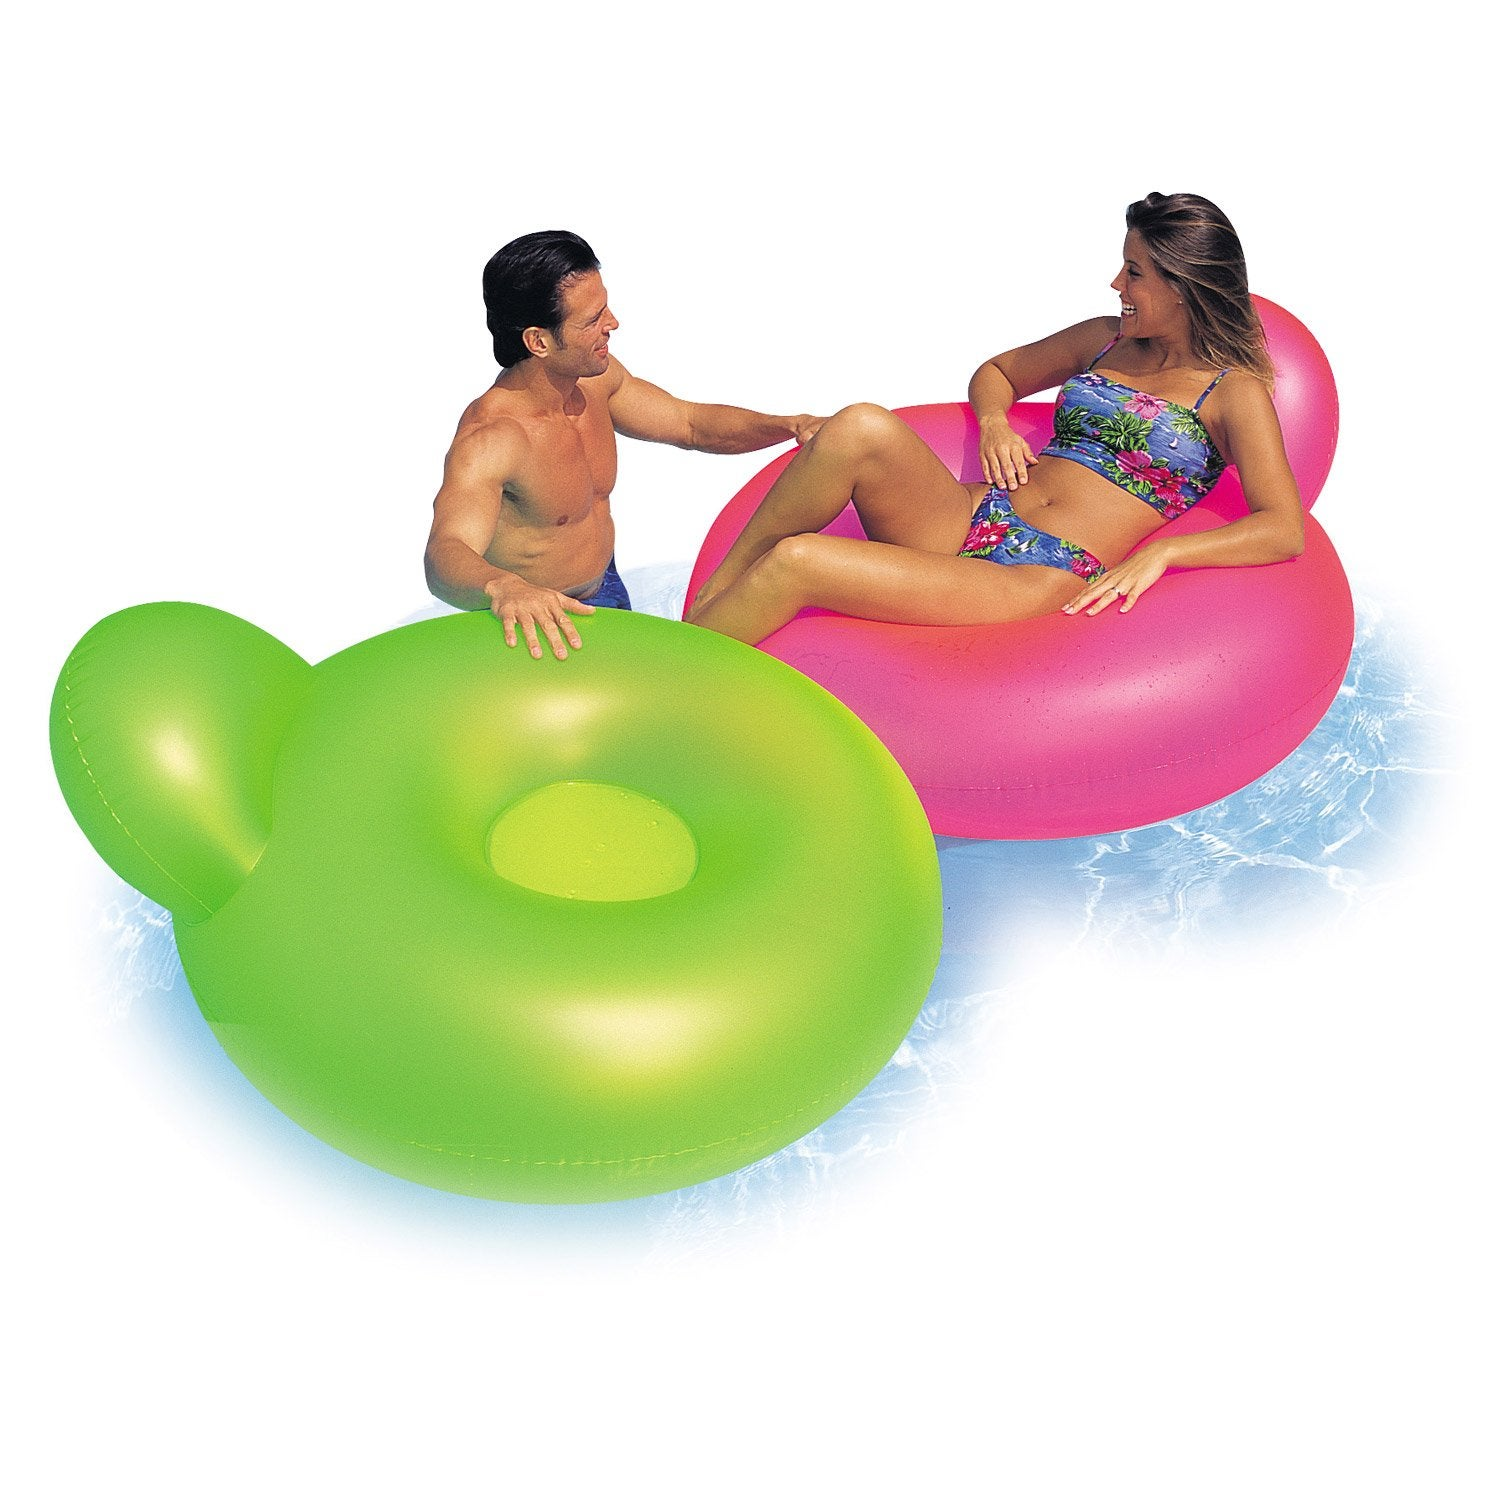 Fauteuil de piscine gonflable intex leroy merlin for Piscine gonflable chauffante